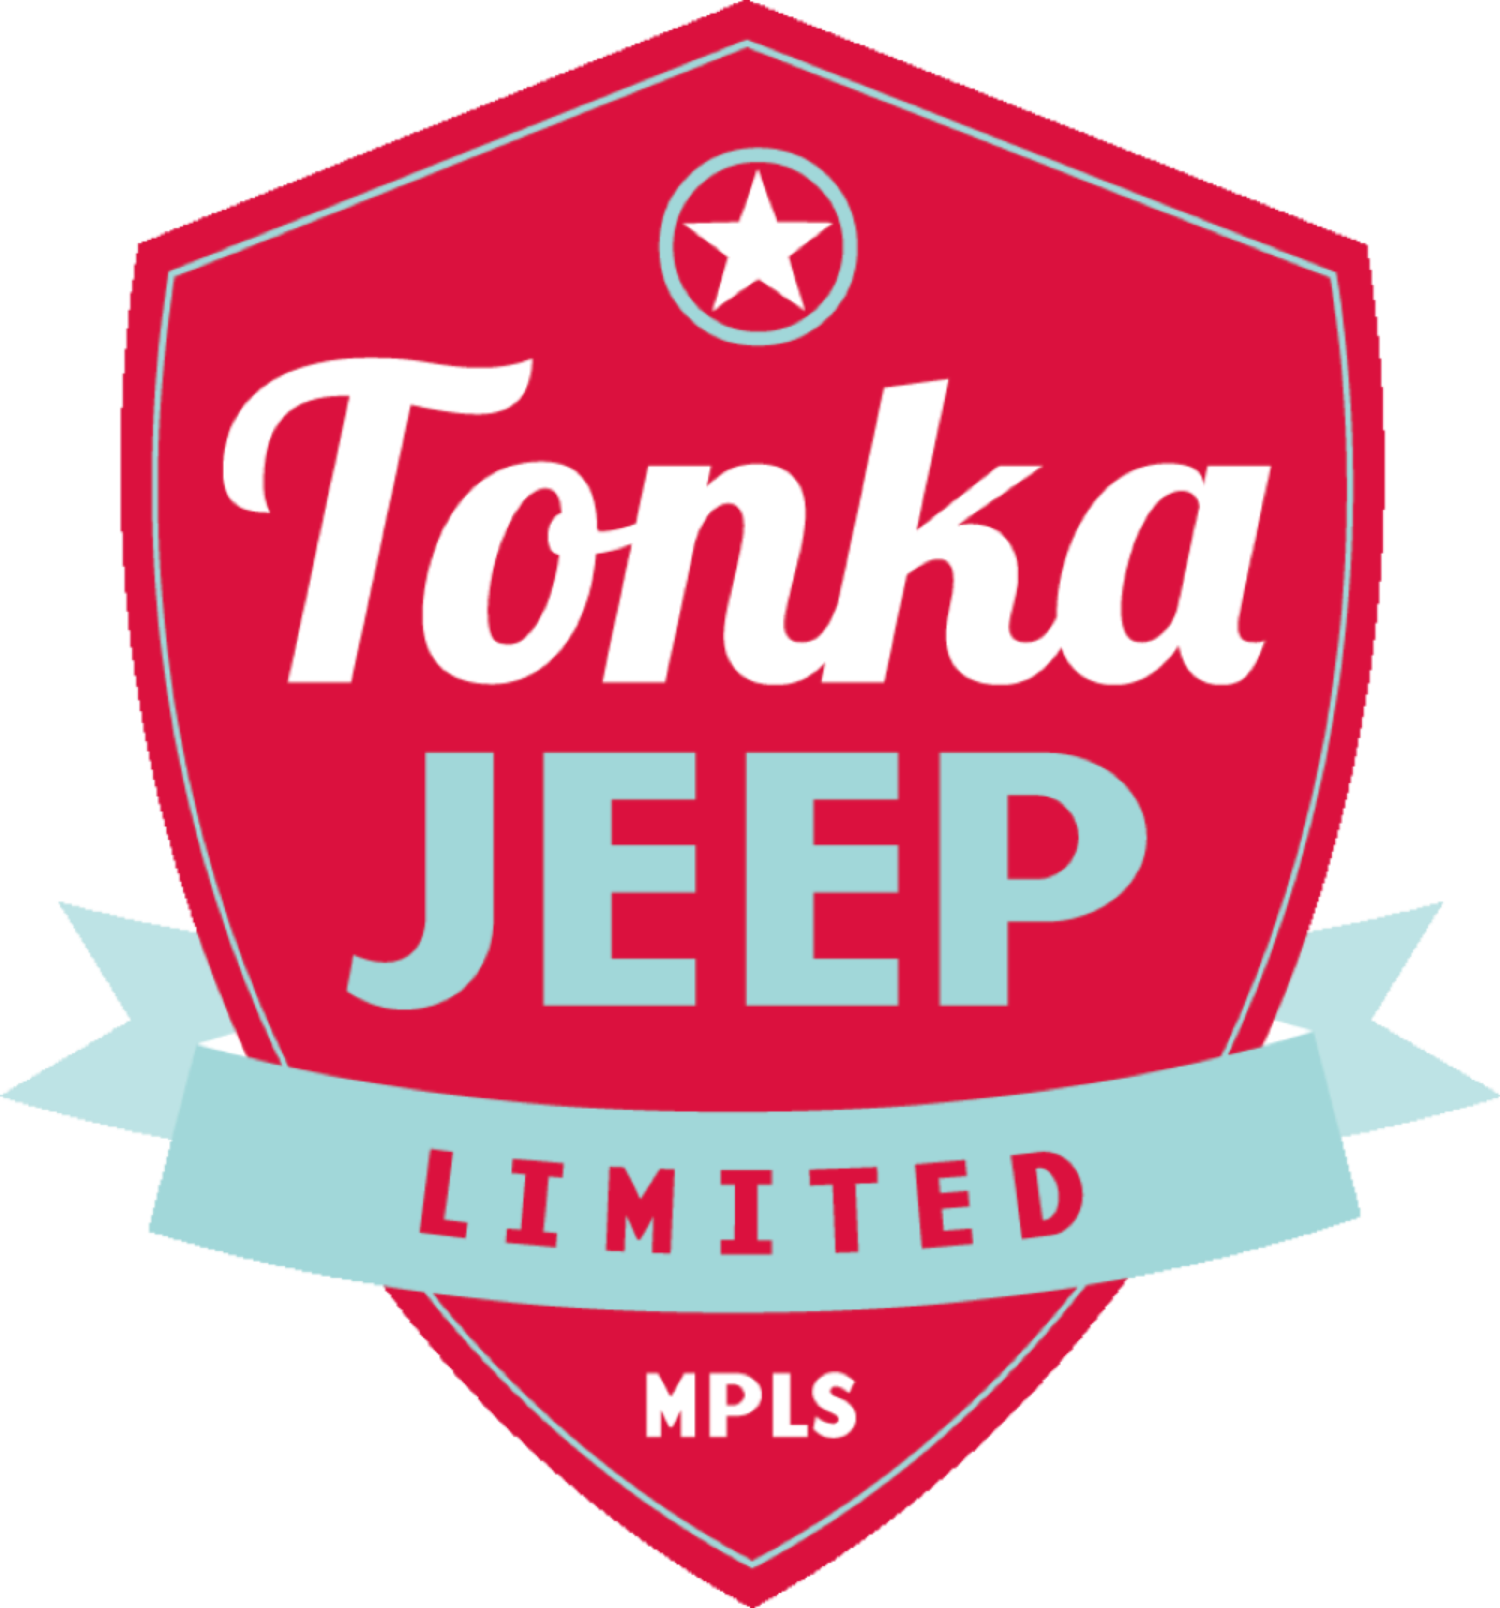 Tonka Jeep Limited